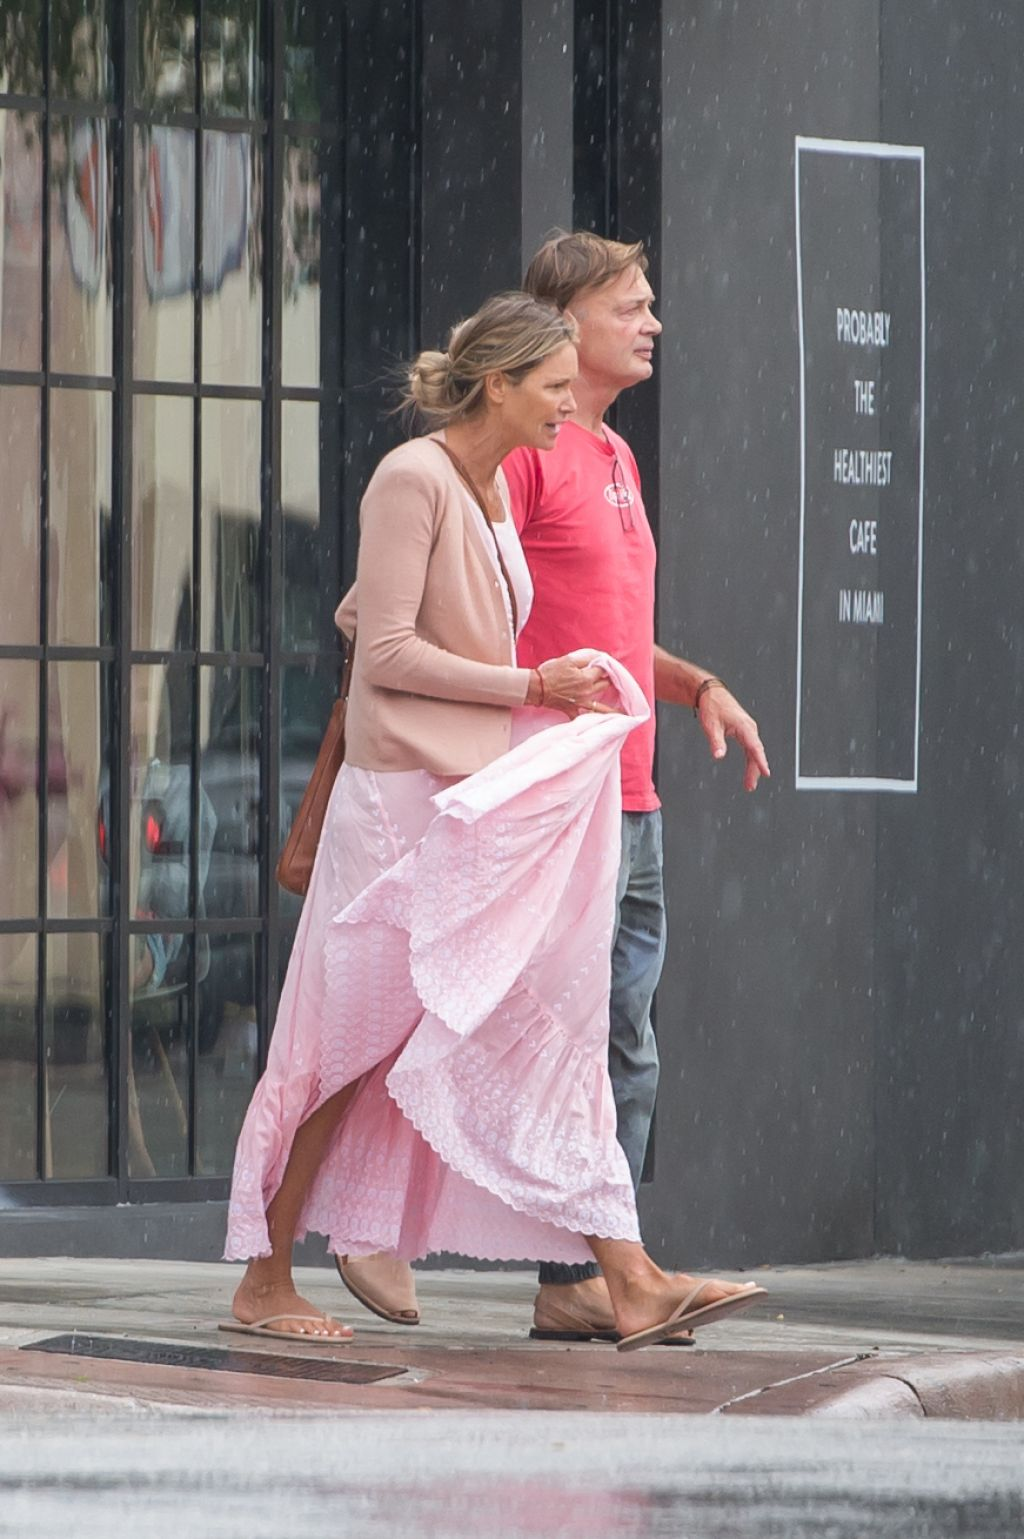 elle macpherson and andrew wakefield shopping in miami